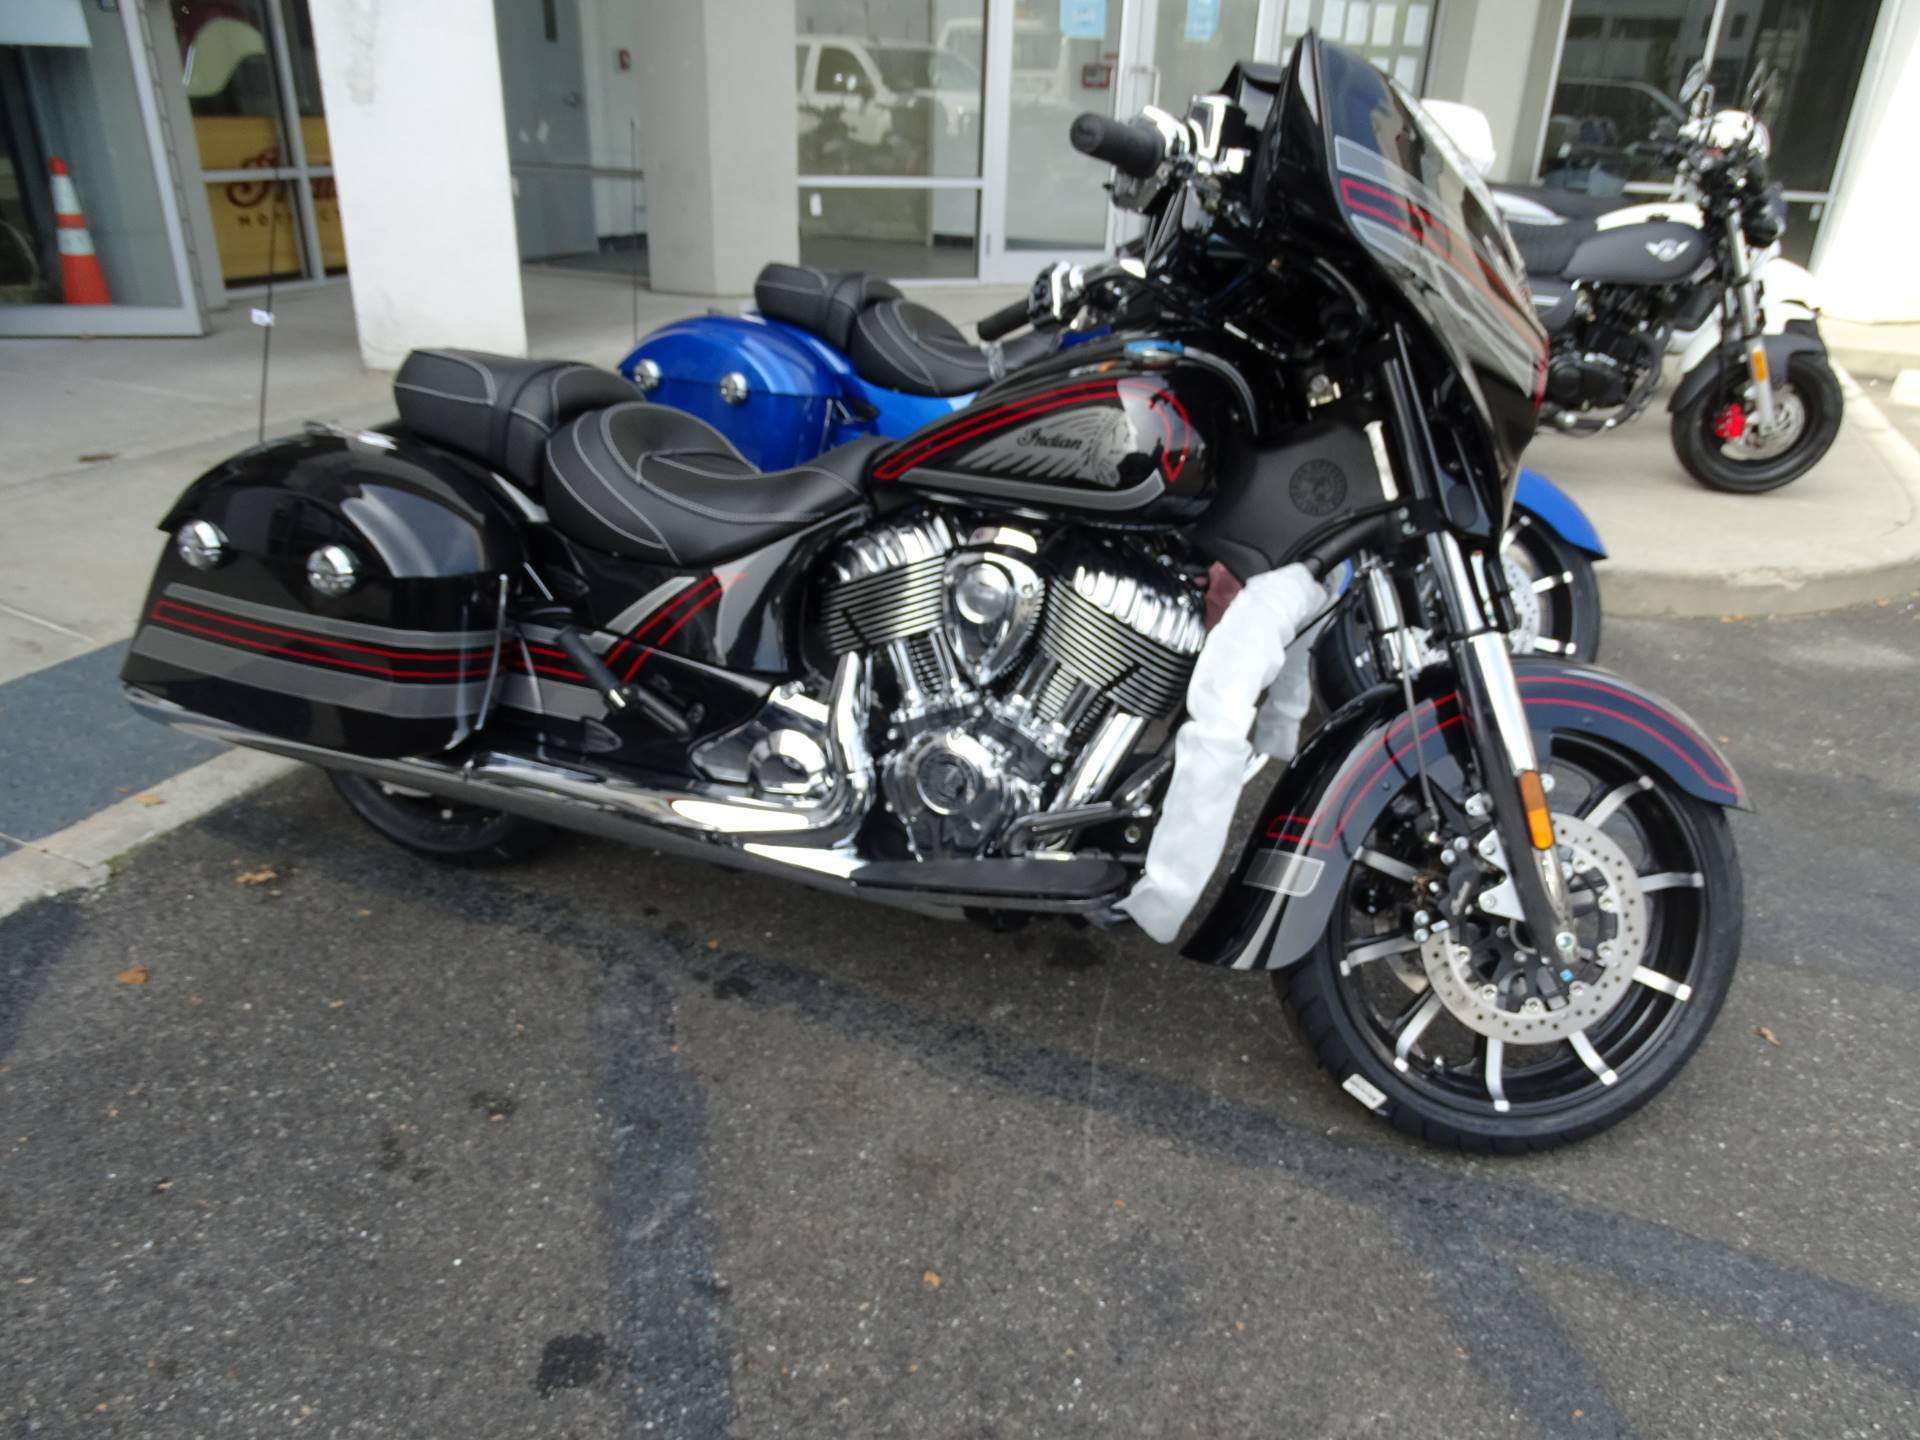 2018 Indian Chieftain Limited in Staten Island, New York